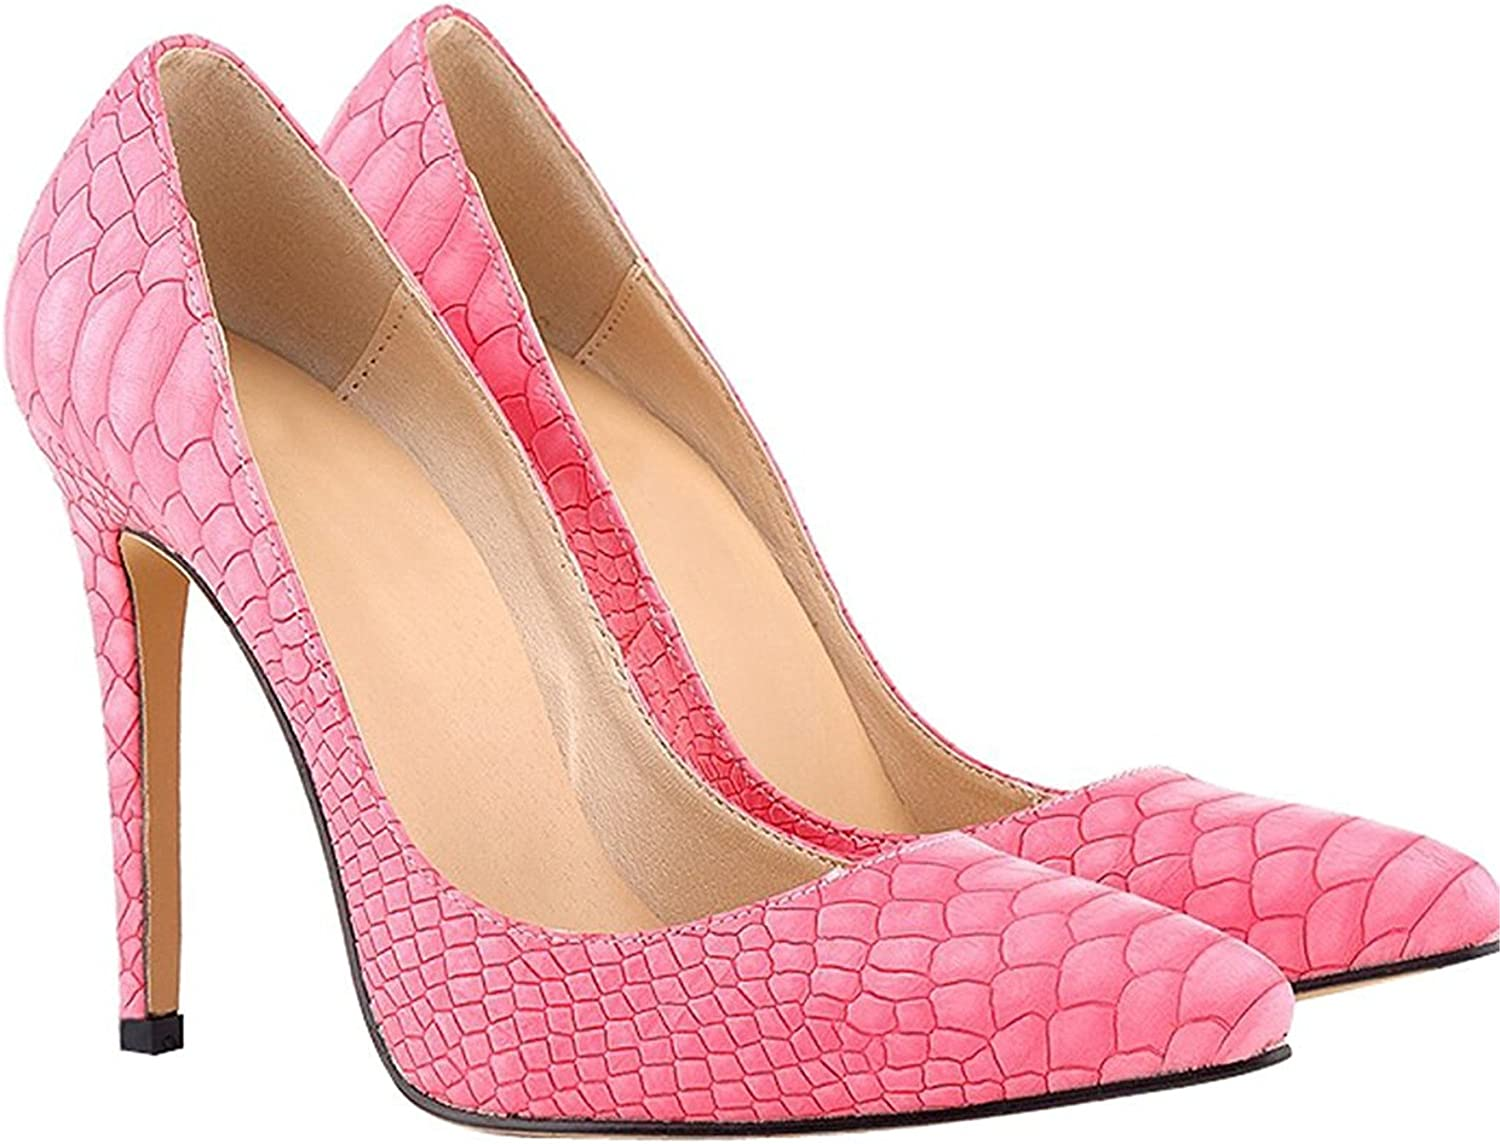 WANabcMAN Comfortable Women's Pattern Pointy Stiletto High Heels shoes Pink 42